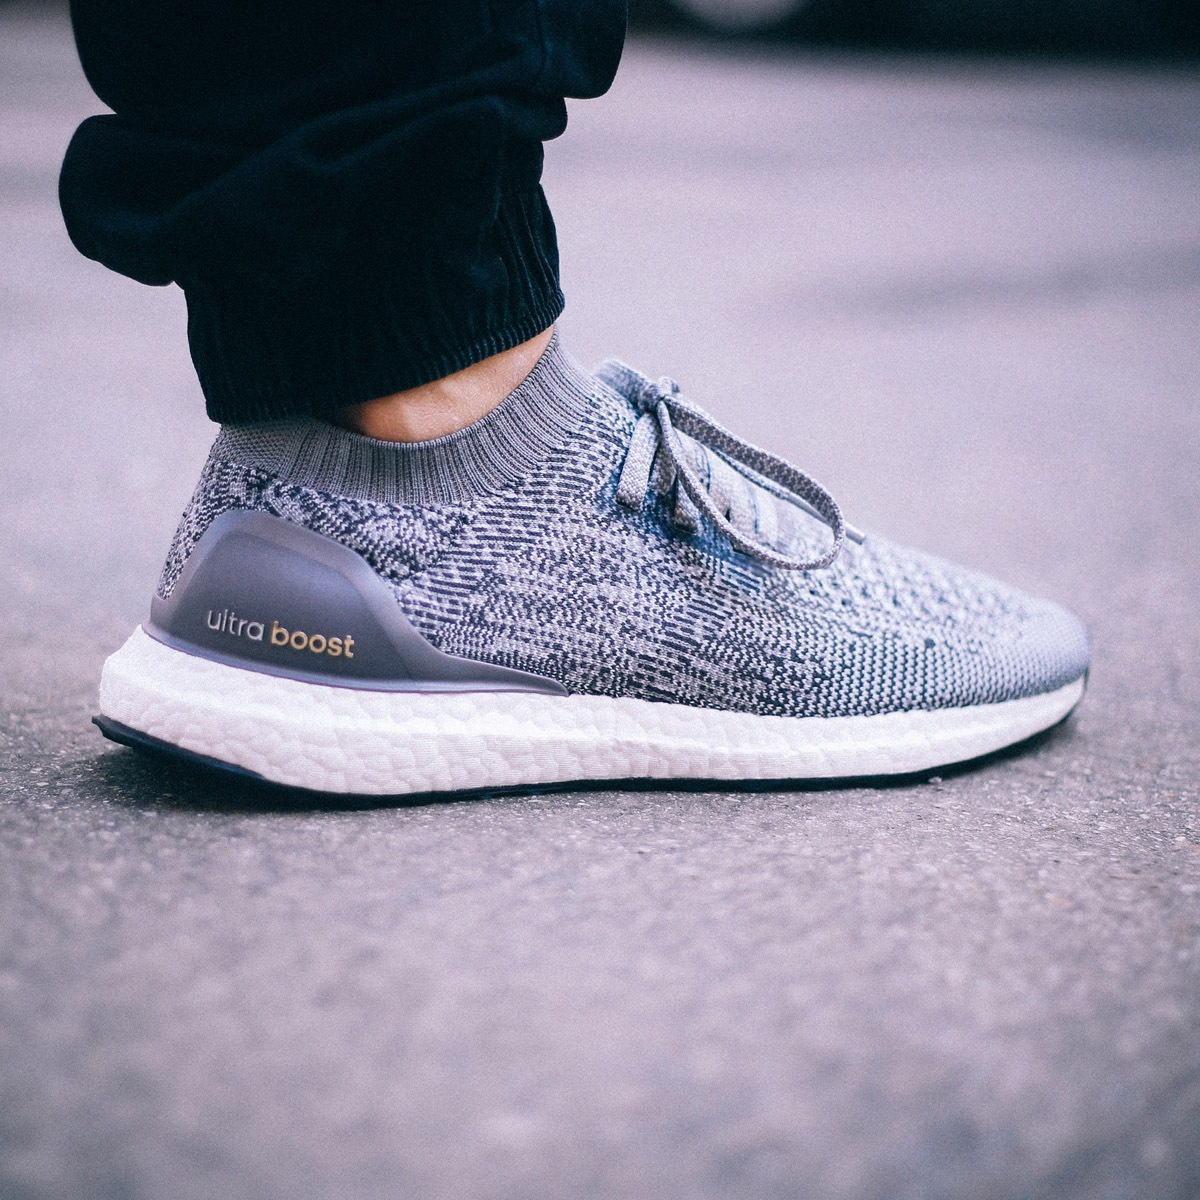 2717bfe9fdaf2 How to clean ultra boost entirely